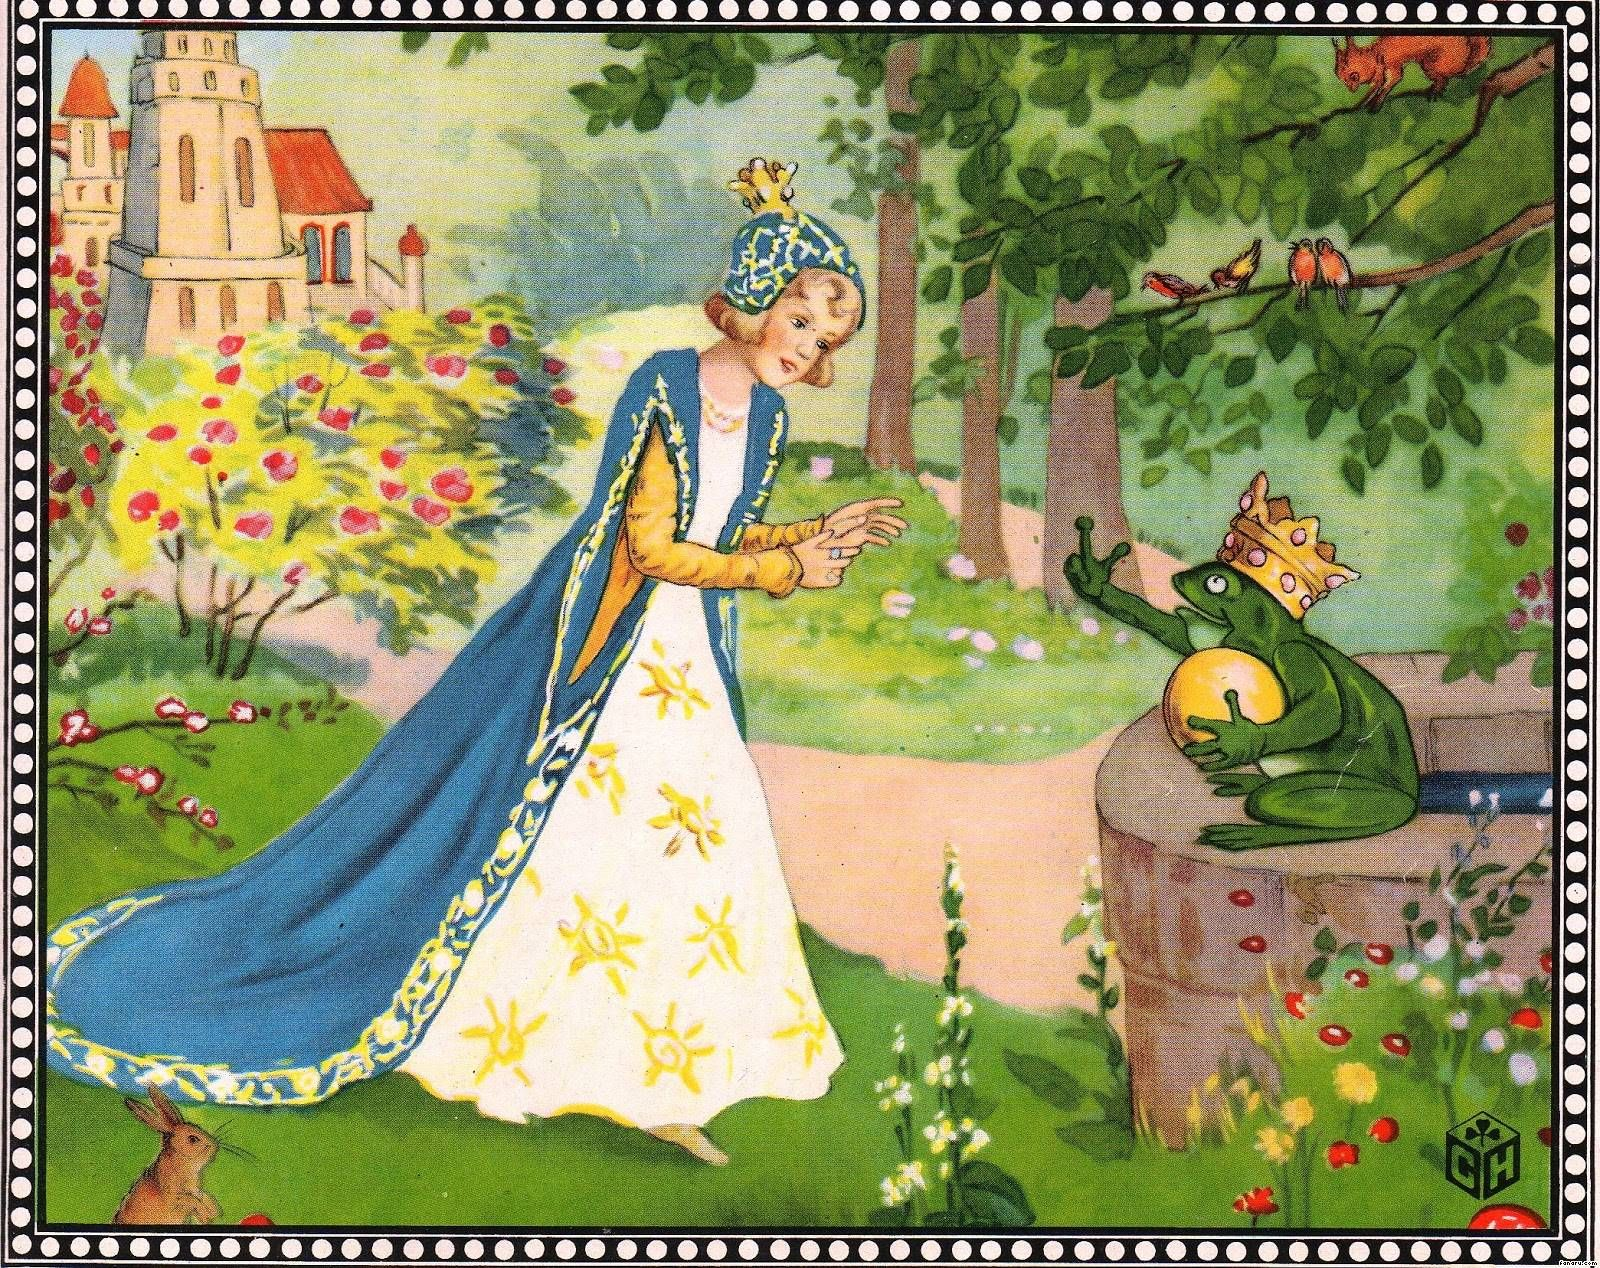 The Frog Prince Illustration - Fairy Tales Wallpaper   Fairy tales, Frog prince, Illustration